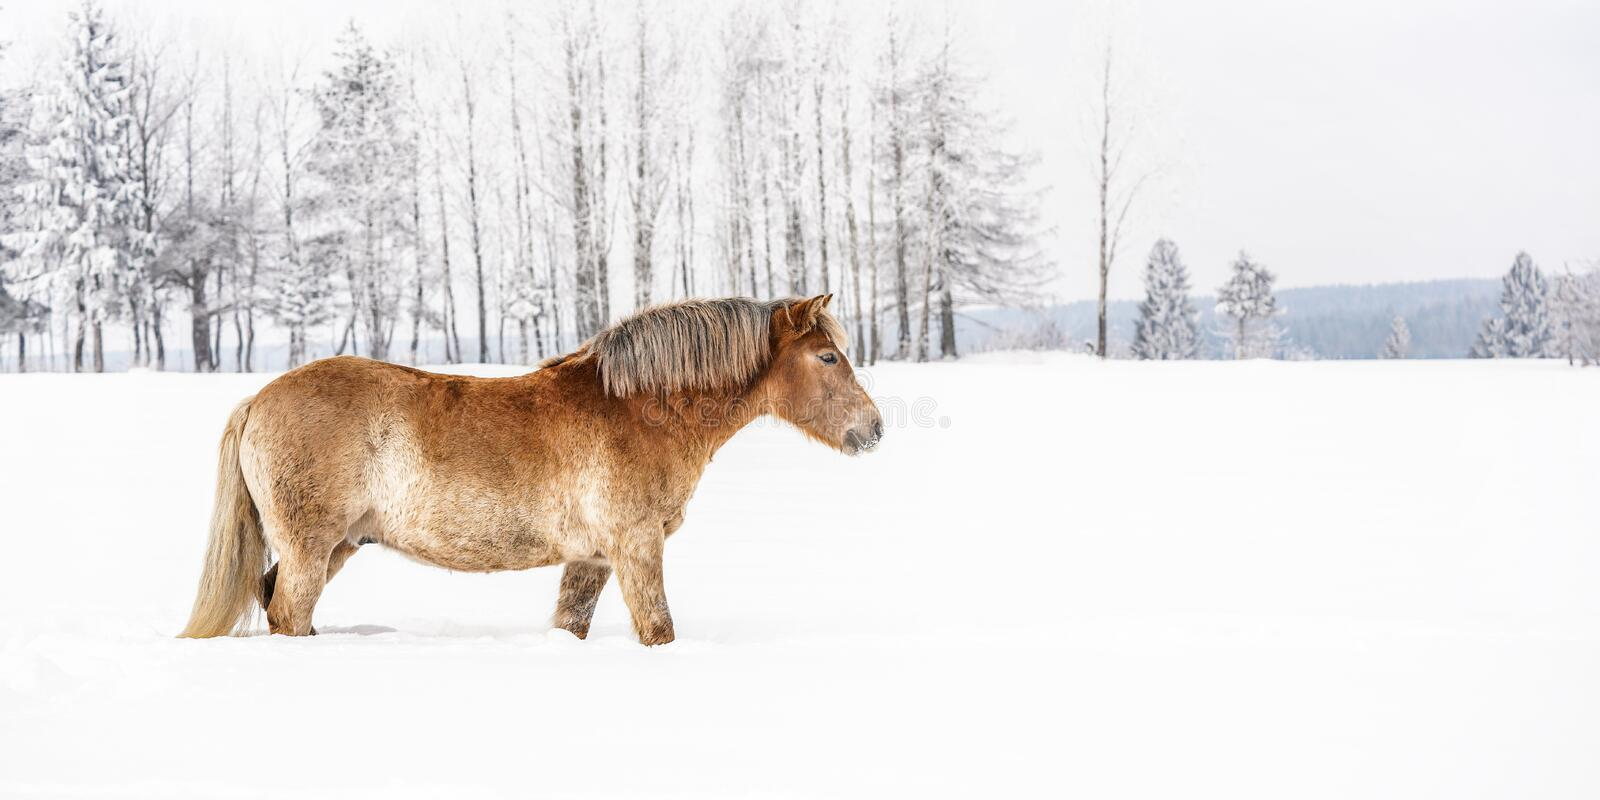 Light brown Haflinger horse wading in snowy field during winter, blurred trees background stock photography